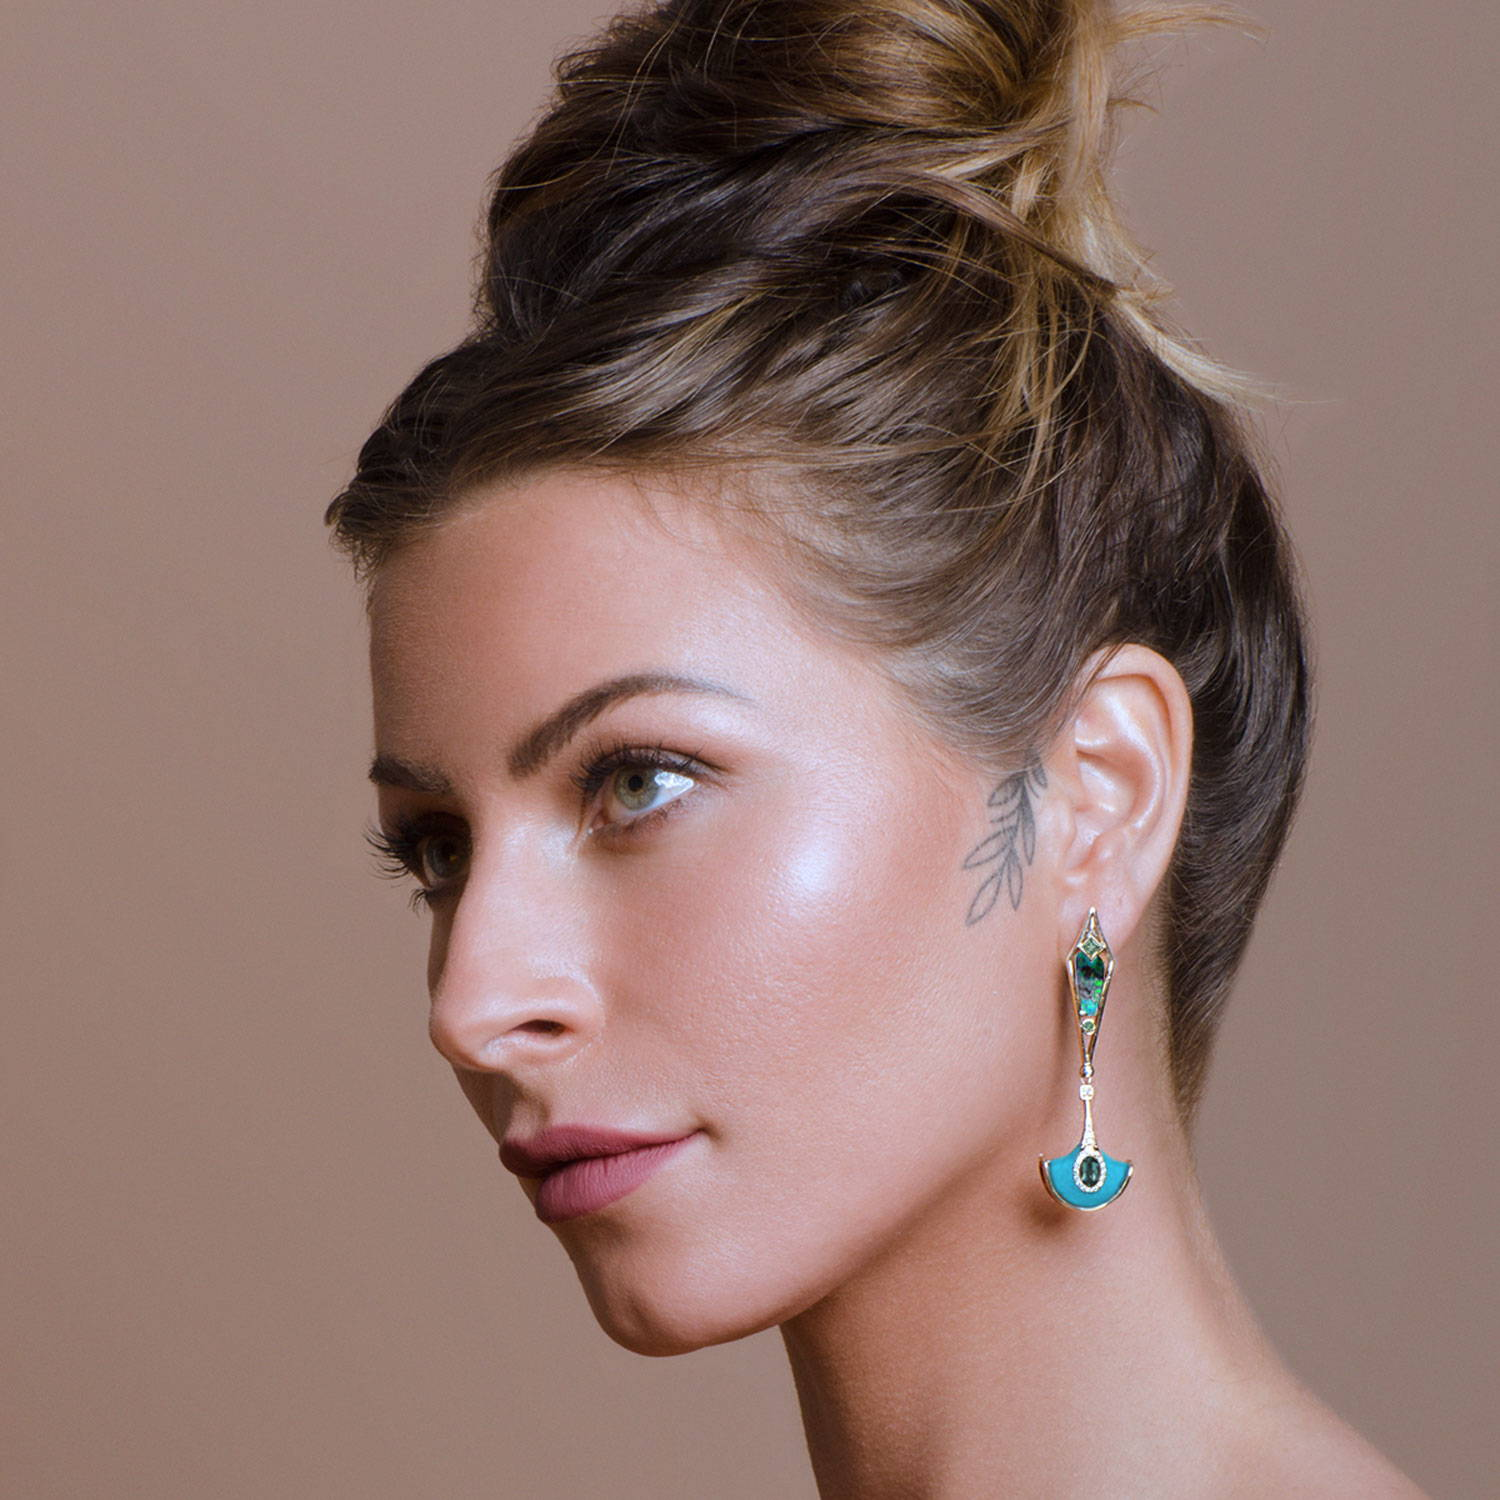 Model wearing Blue and Turquoise Statement earrings with the Gemstone Boulder Opal, diamonds and sage-coloured tourmaline. By K8 Jewelry Concepts Bijoux made in Montreal.